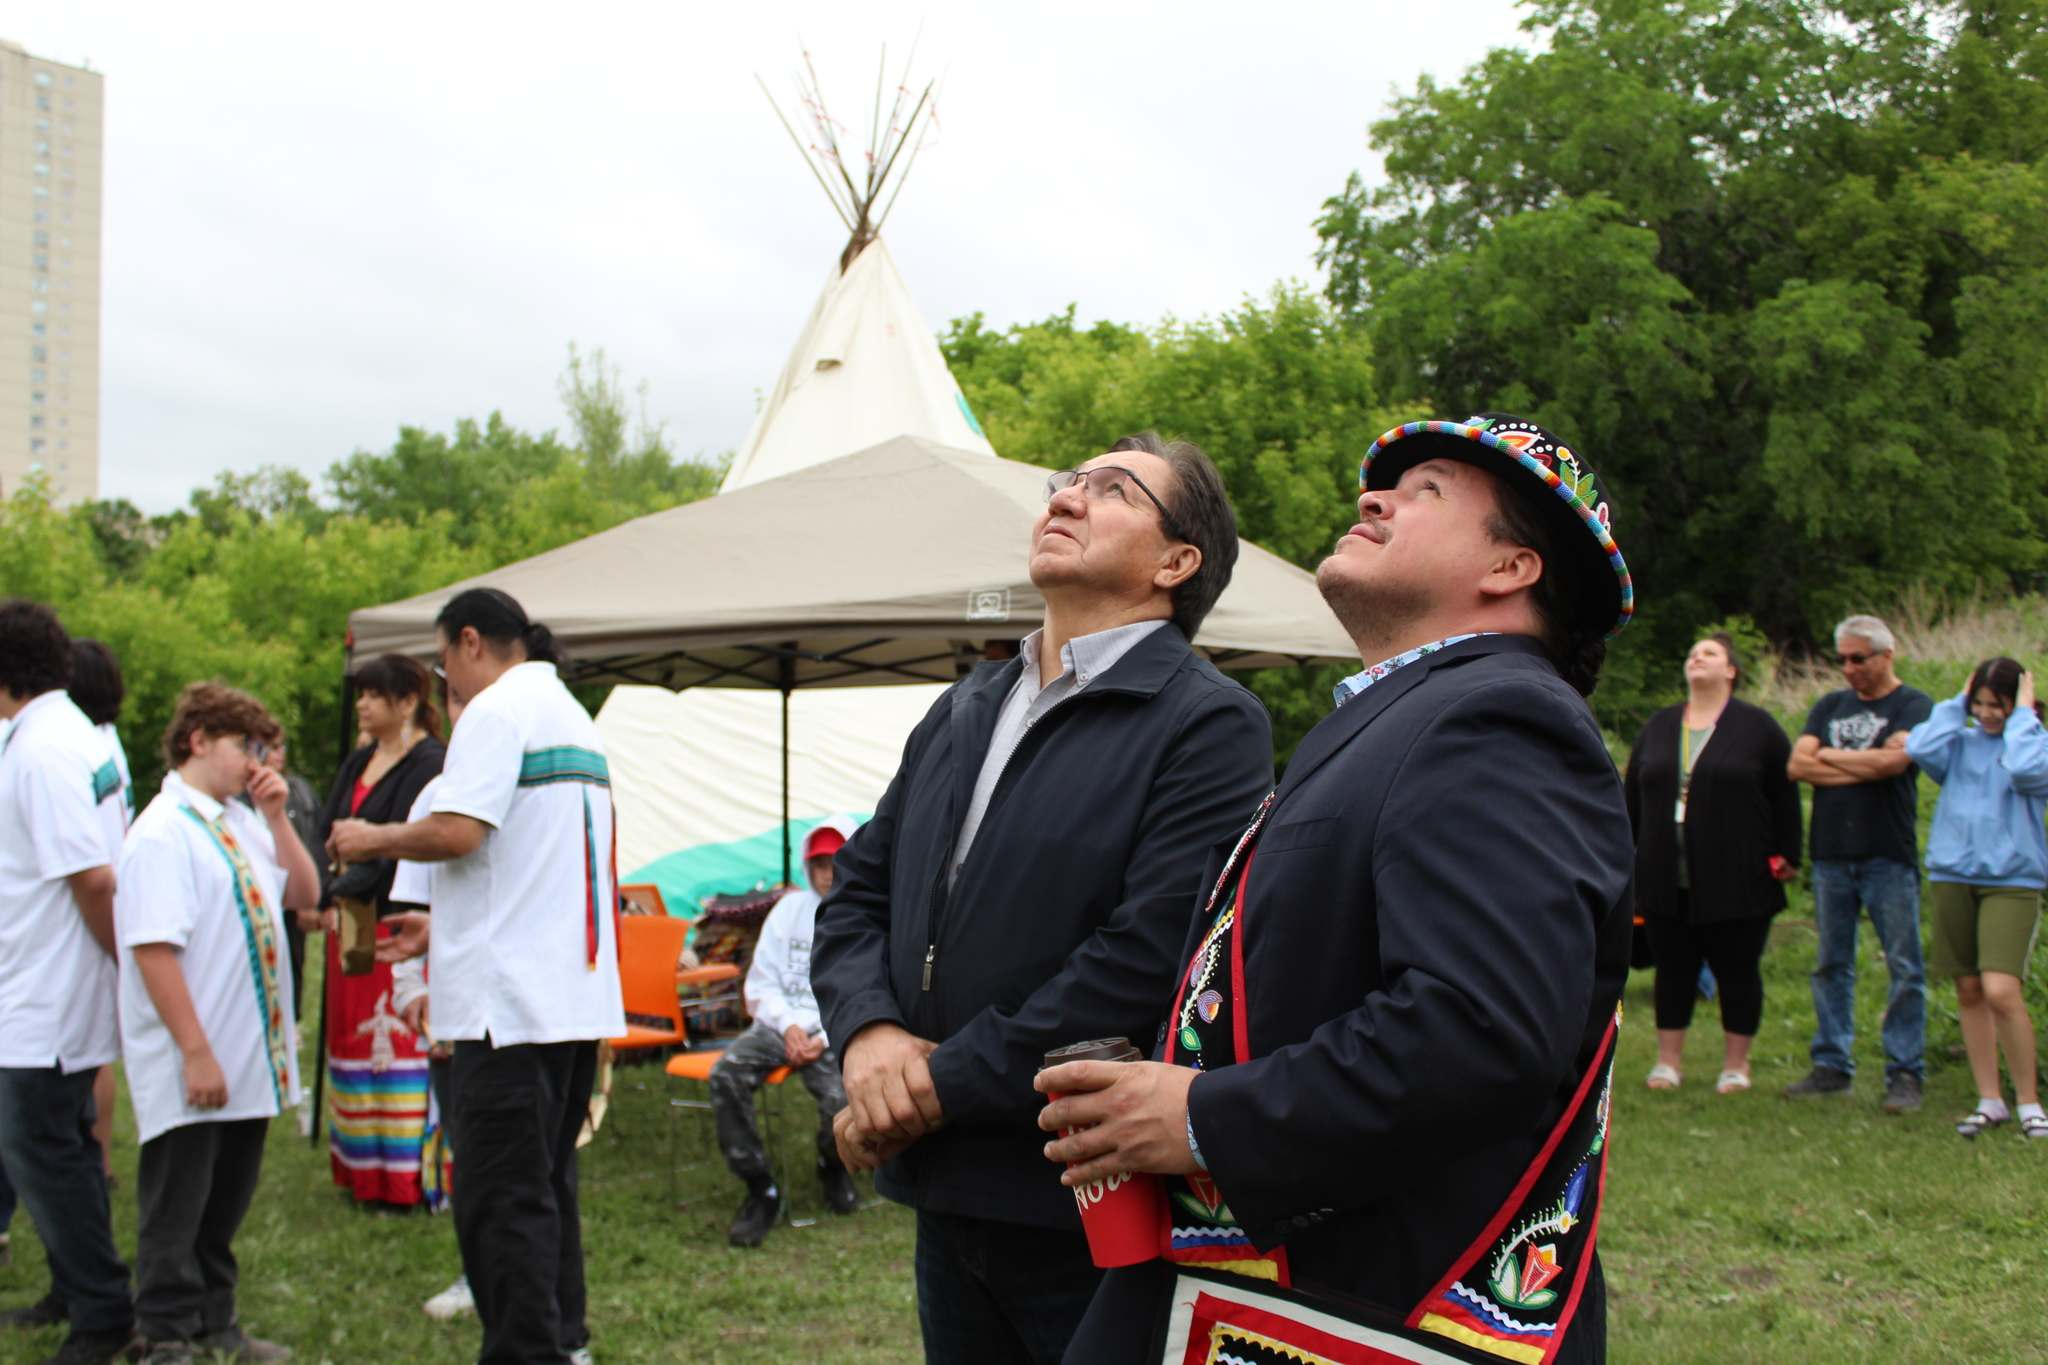 The Southern Chiefs' Organization Grand Chief Jerry Daniels, right, with Chief Garnet Woodhouse of Pinaymootang First Nation, observes his organization's flag raised, signalling a partnership with Macdonald Youth Services in Winnipeg Tuesday. (Submitted)</p>